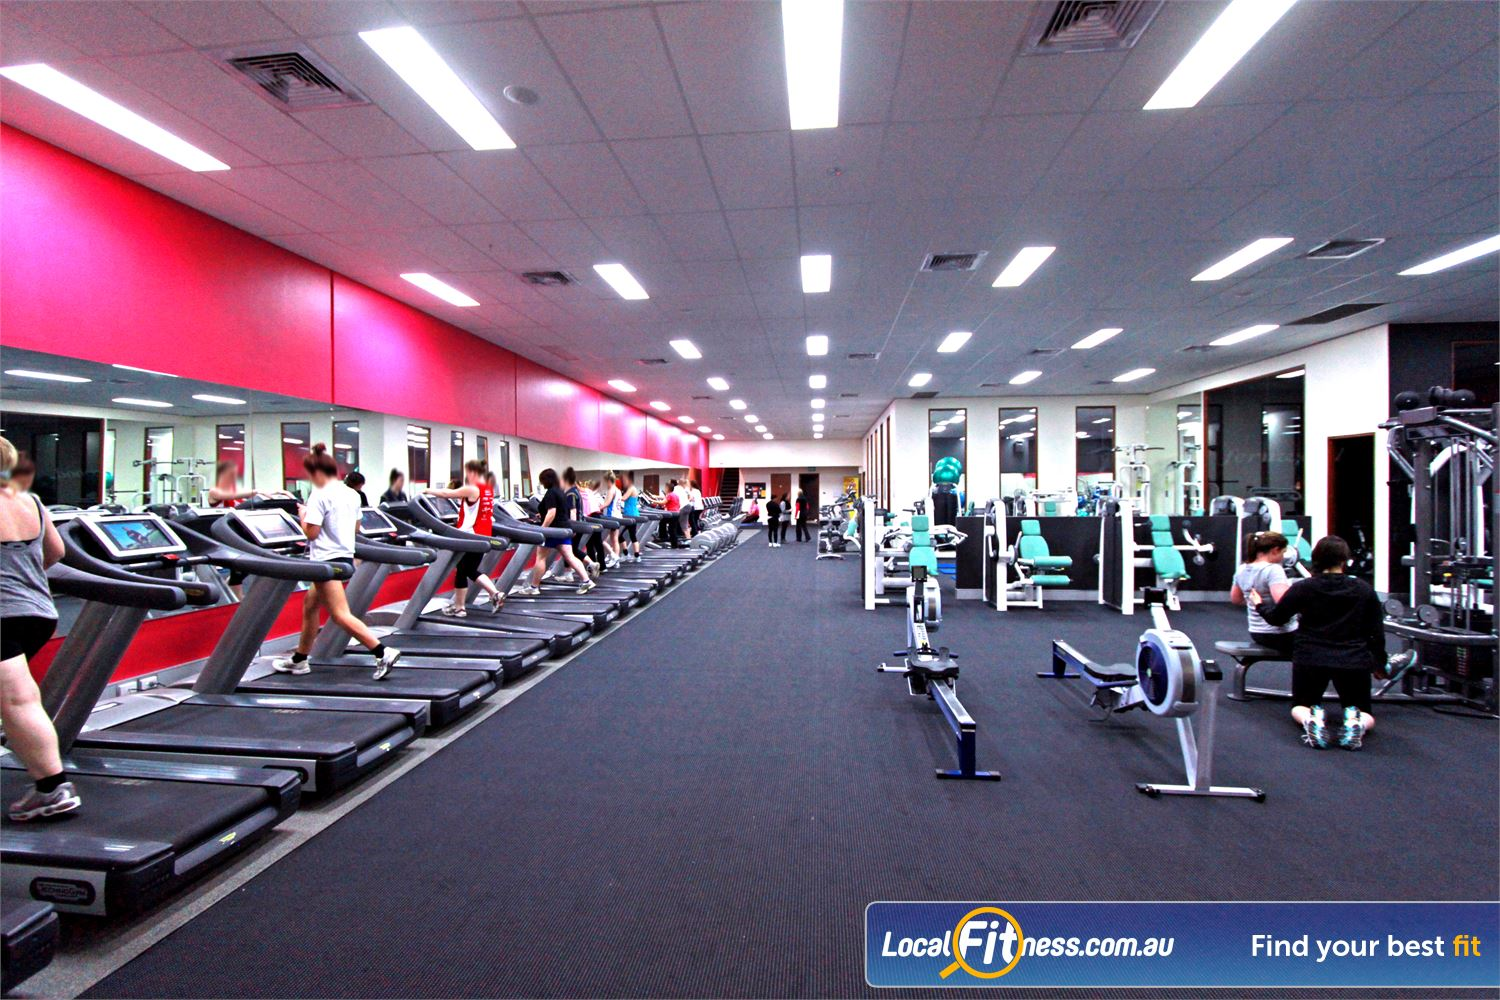 Fernwood Fitness Near Tremont Choose your favourite treadmill, cycle bike, rower and more.